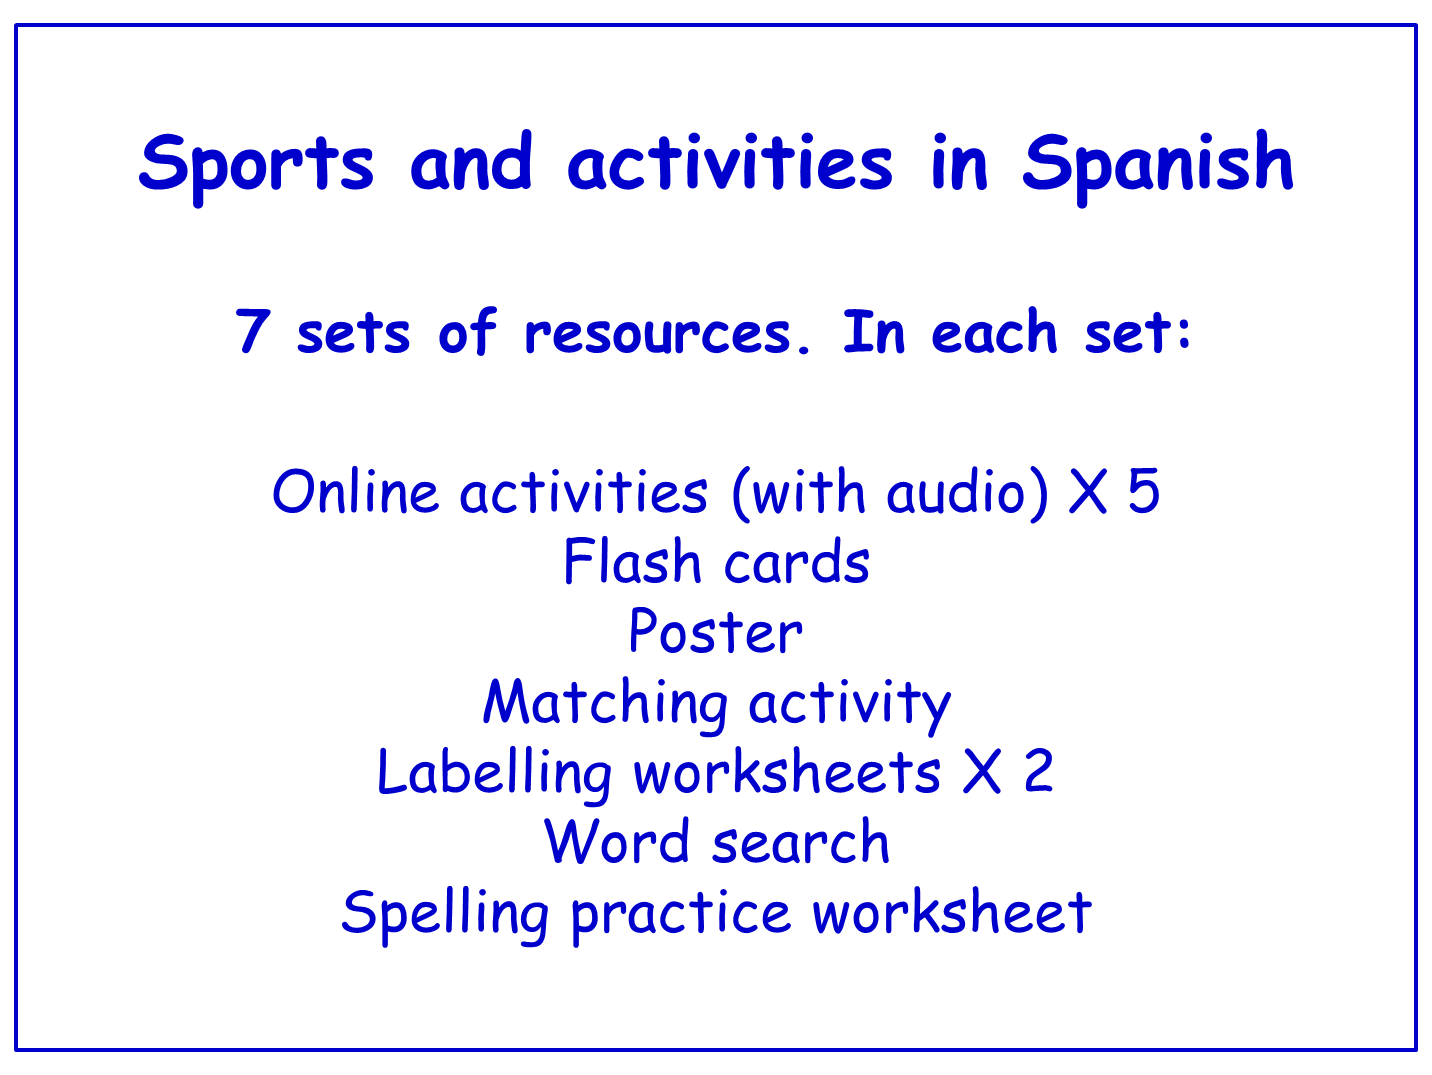 Sports in Spanish  Worksheets, Games, Activities and Flash Cards (with audio) Bundle (7 sets)